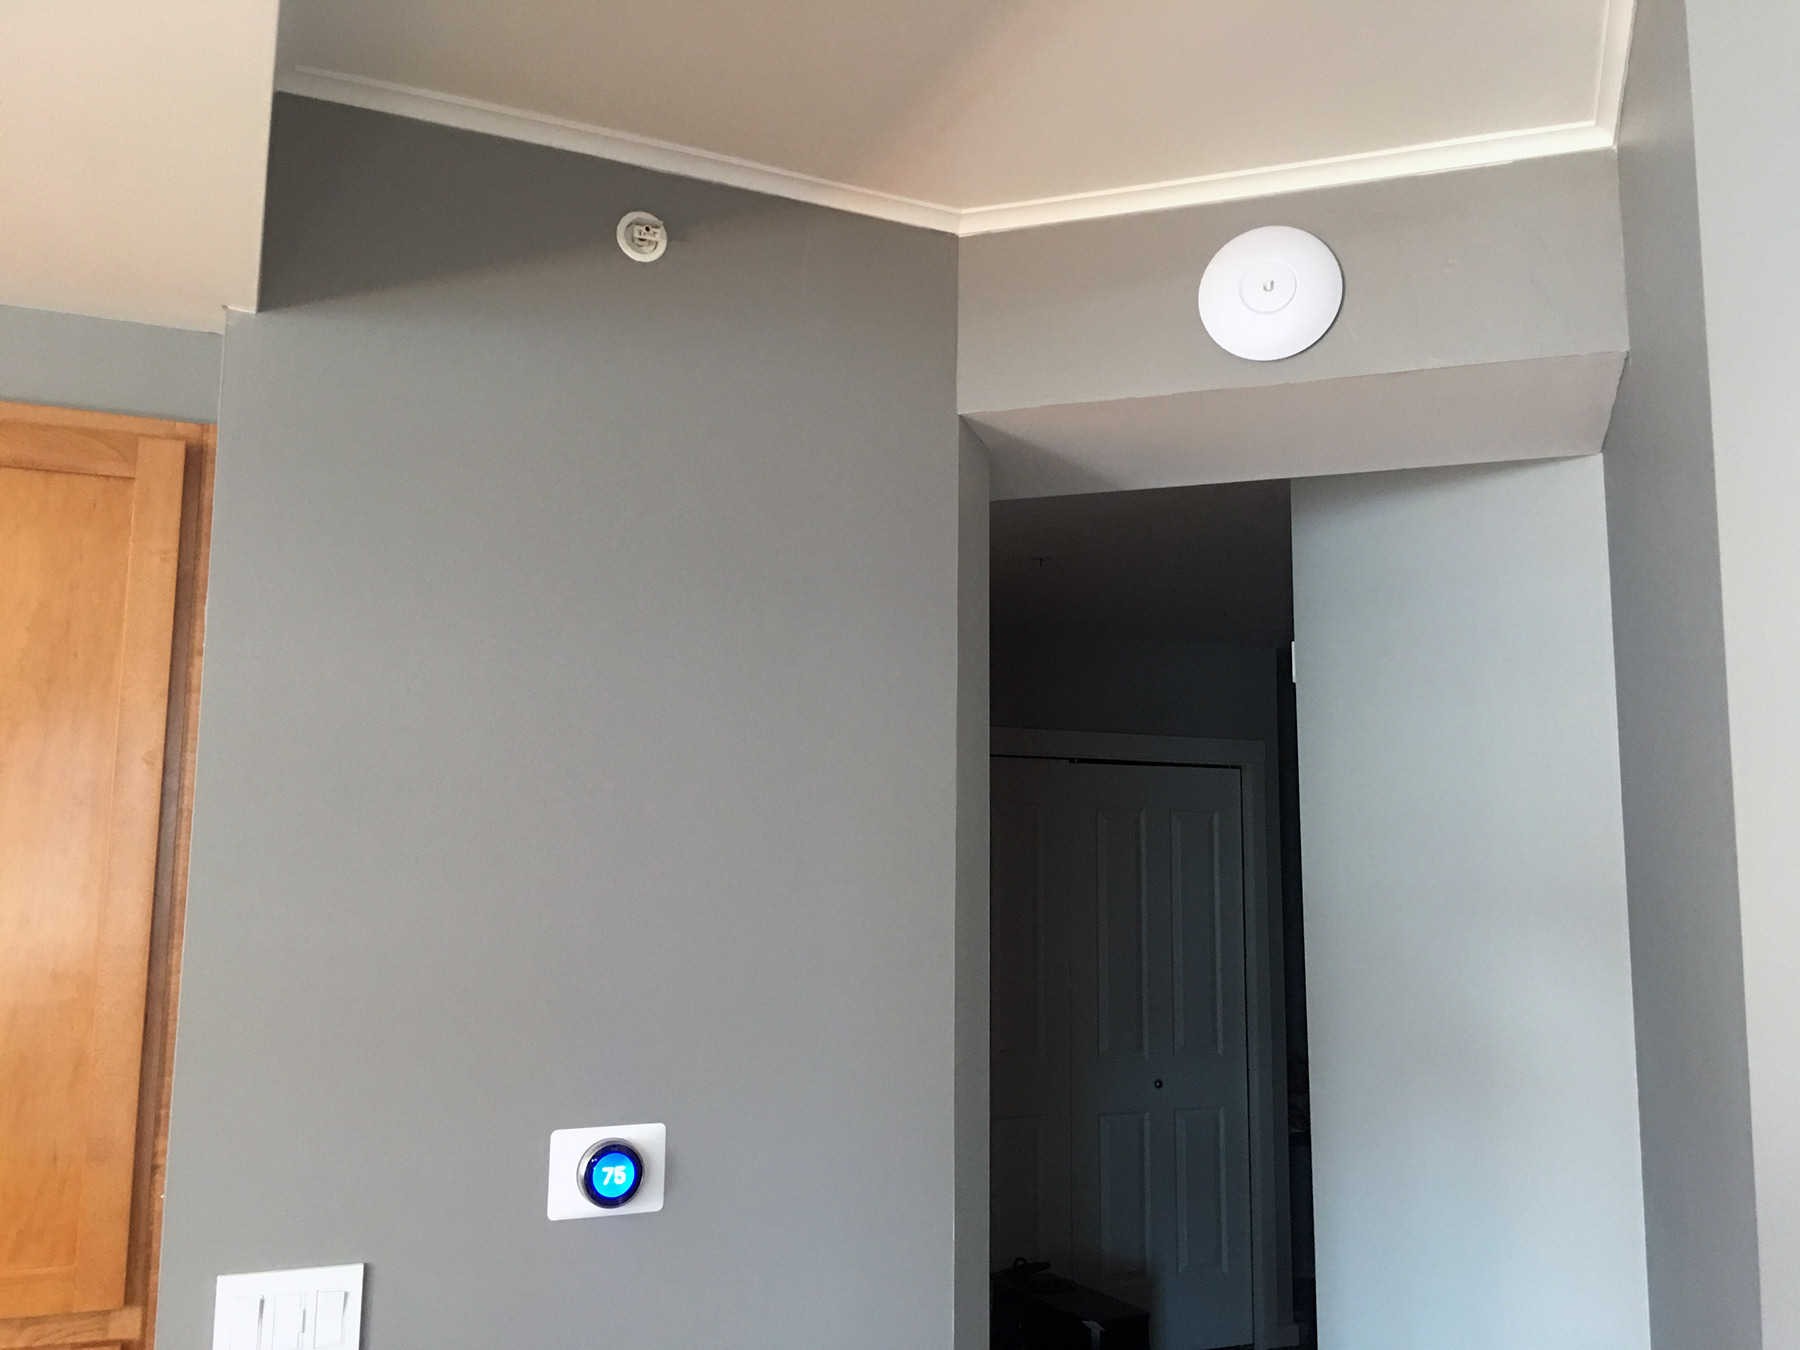 My home network: Ubiquiti UniFi gear, fiber gigabit Internet, CAT6